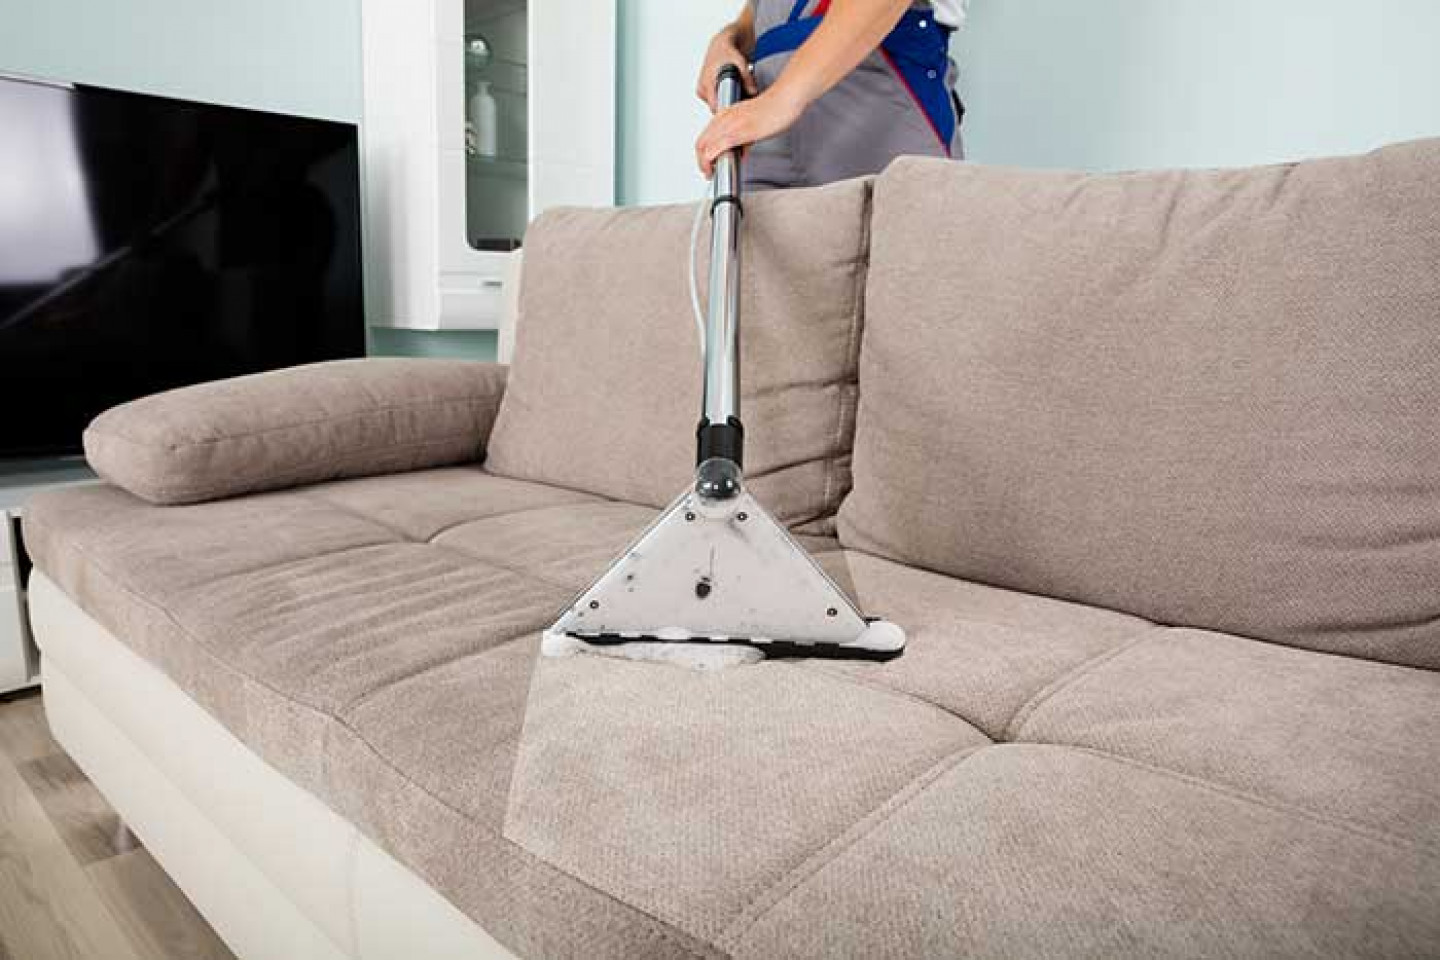 Leave your upholstery needs to a crew of talented cleaners